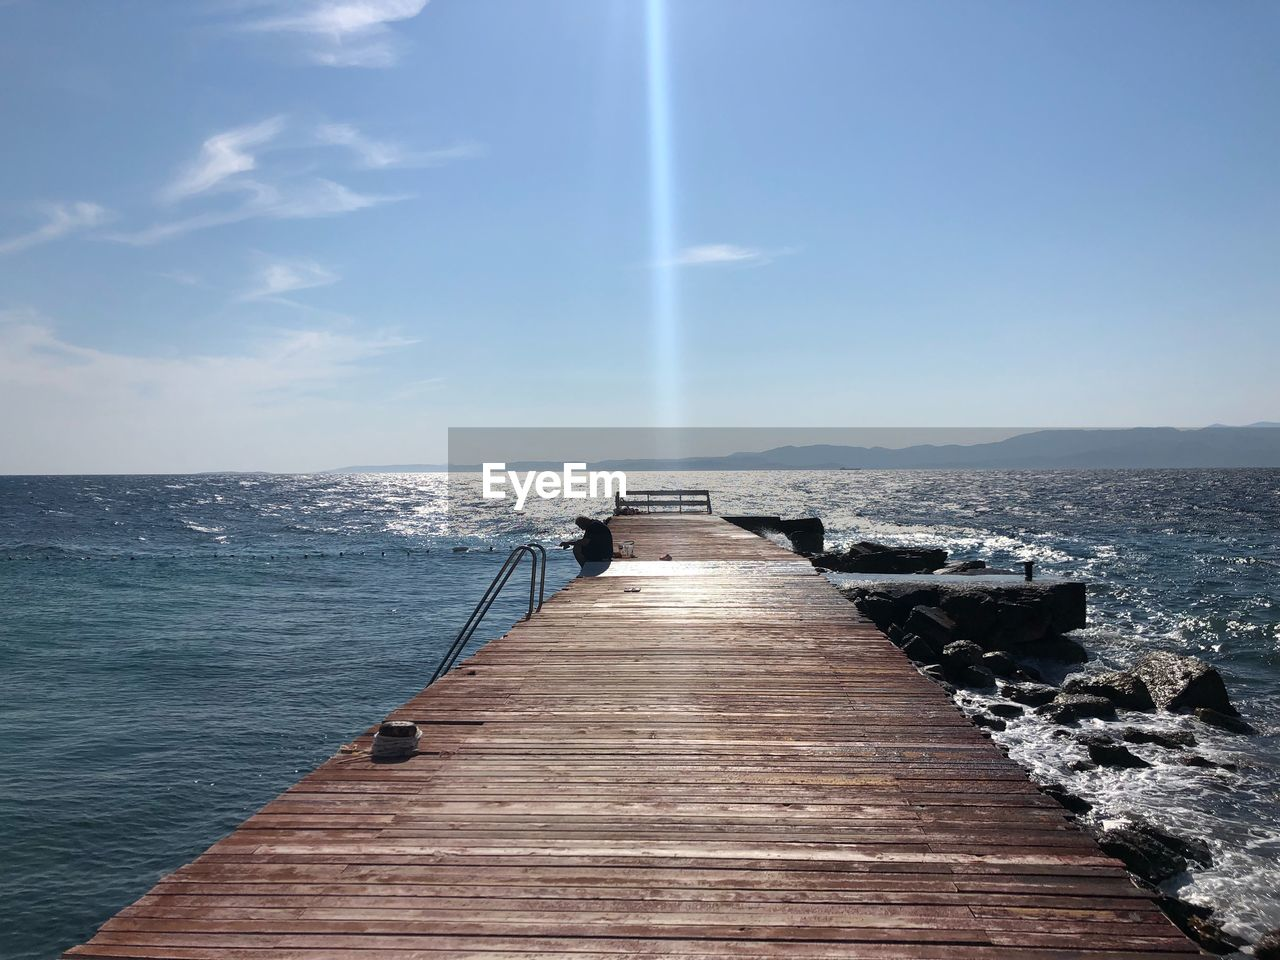 sky, sea, water, the way forward, direction, scenics - nature, nature, horizon, horizon over water, pier, beauty in nature, tranquil scene, day, no people, wood - material, tranquility, cloud - sky, idyllic, architecture, outdoors, diminishing perspective, long